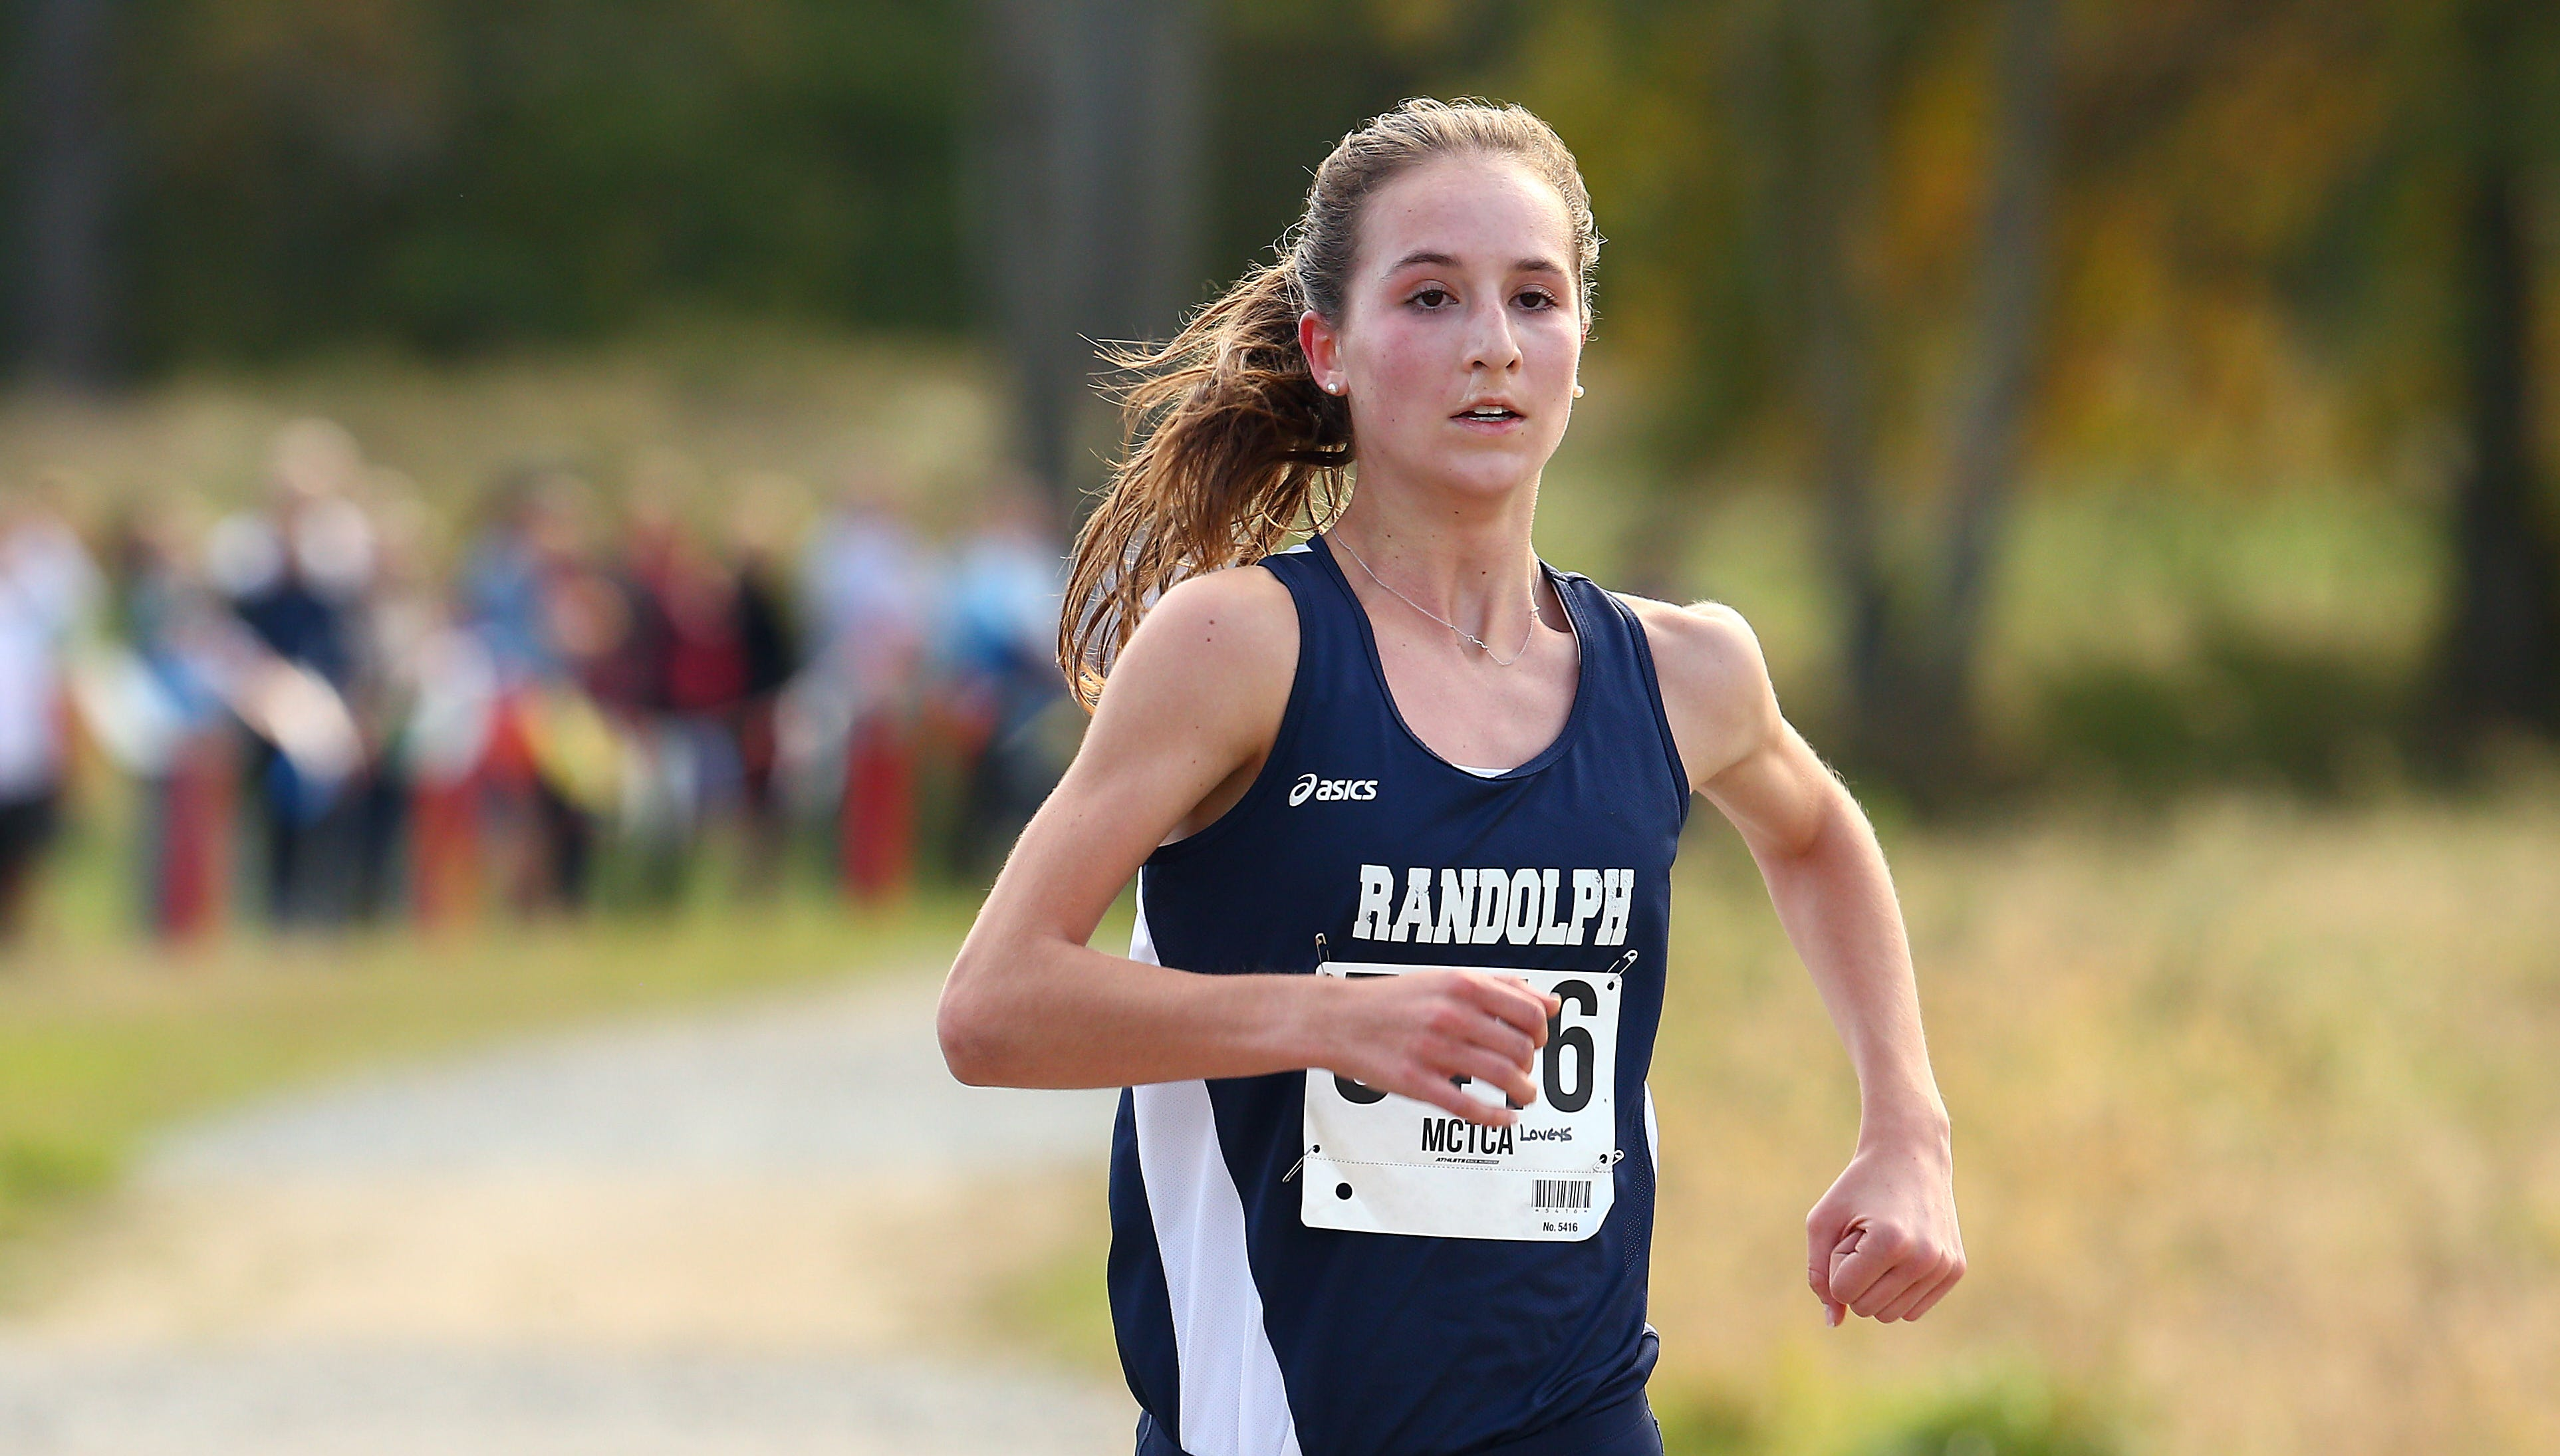 Randolph's Abby Loveys comes in for a course record win during the Morris County girls cross country championships at Central Park of Morris County. October 23, 2018, Morris Plains, NJ